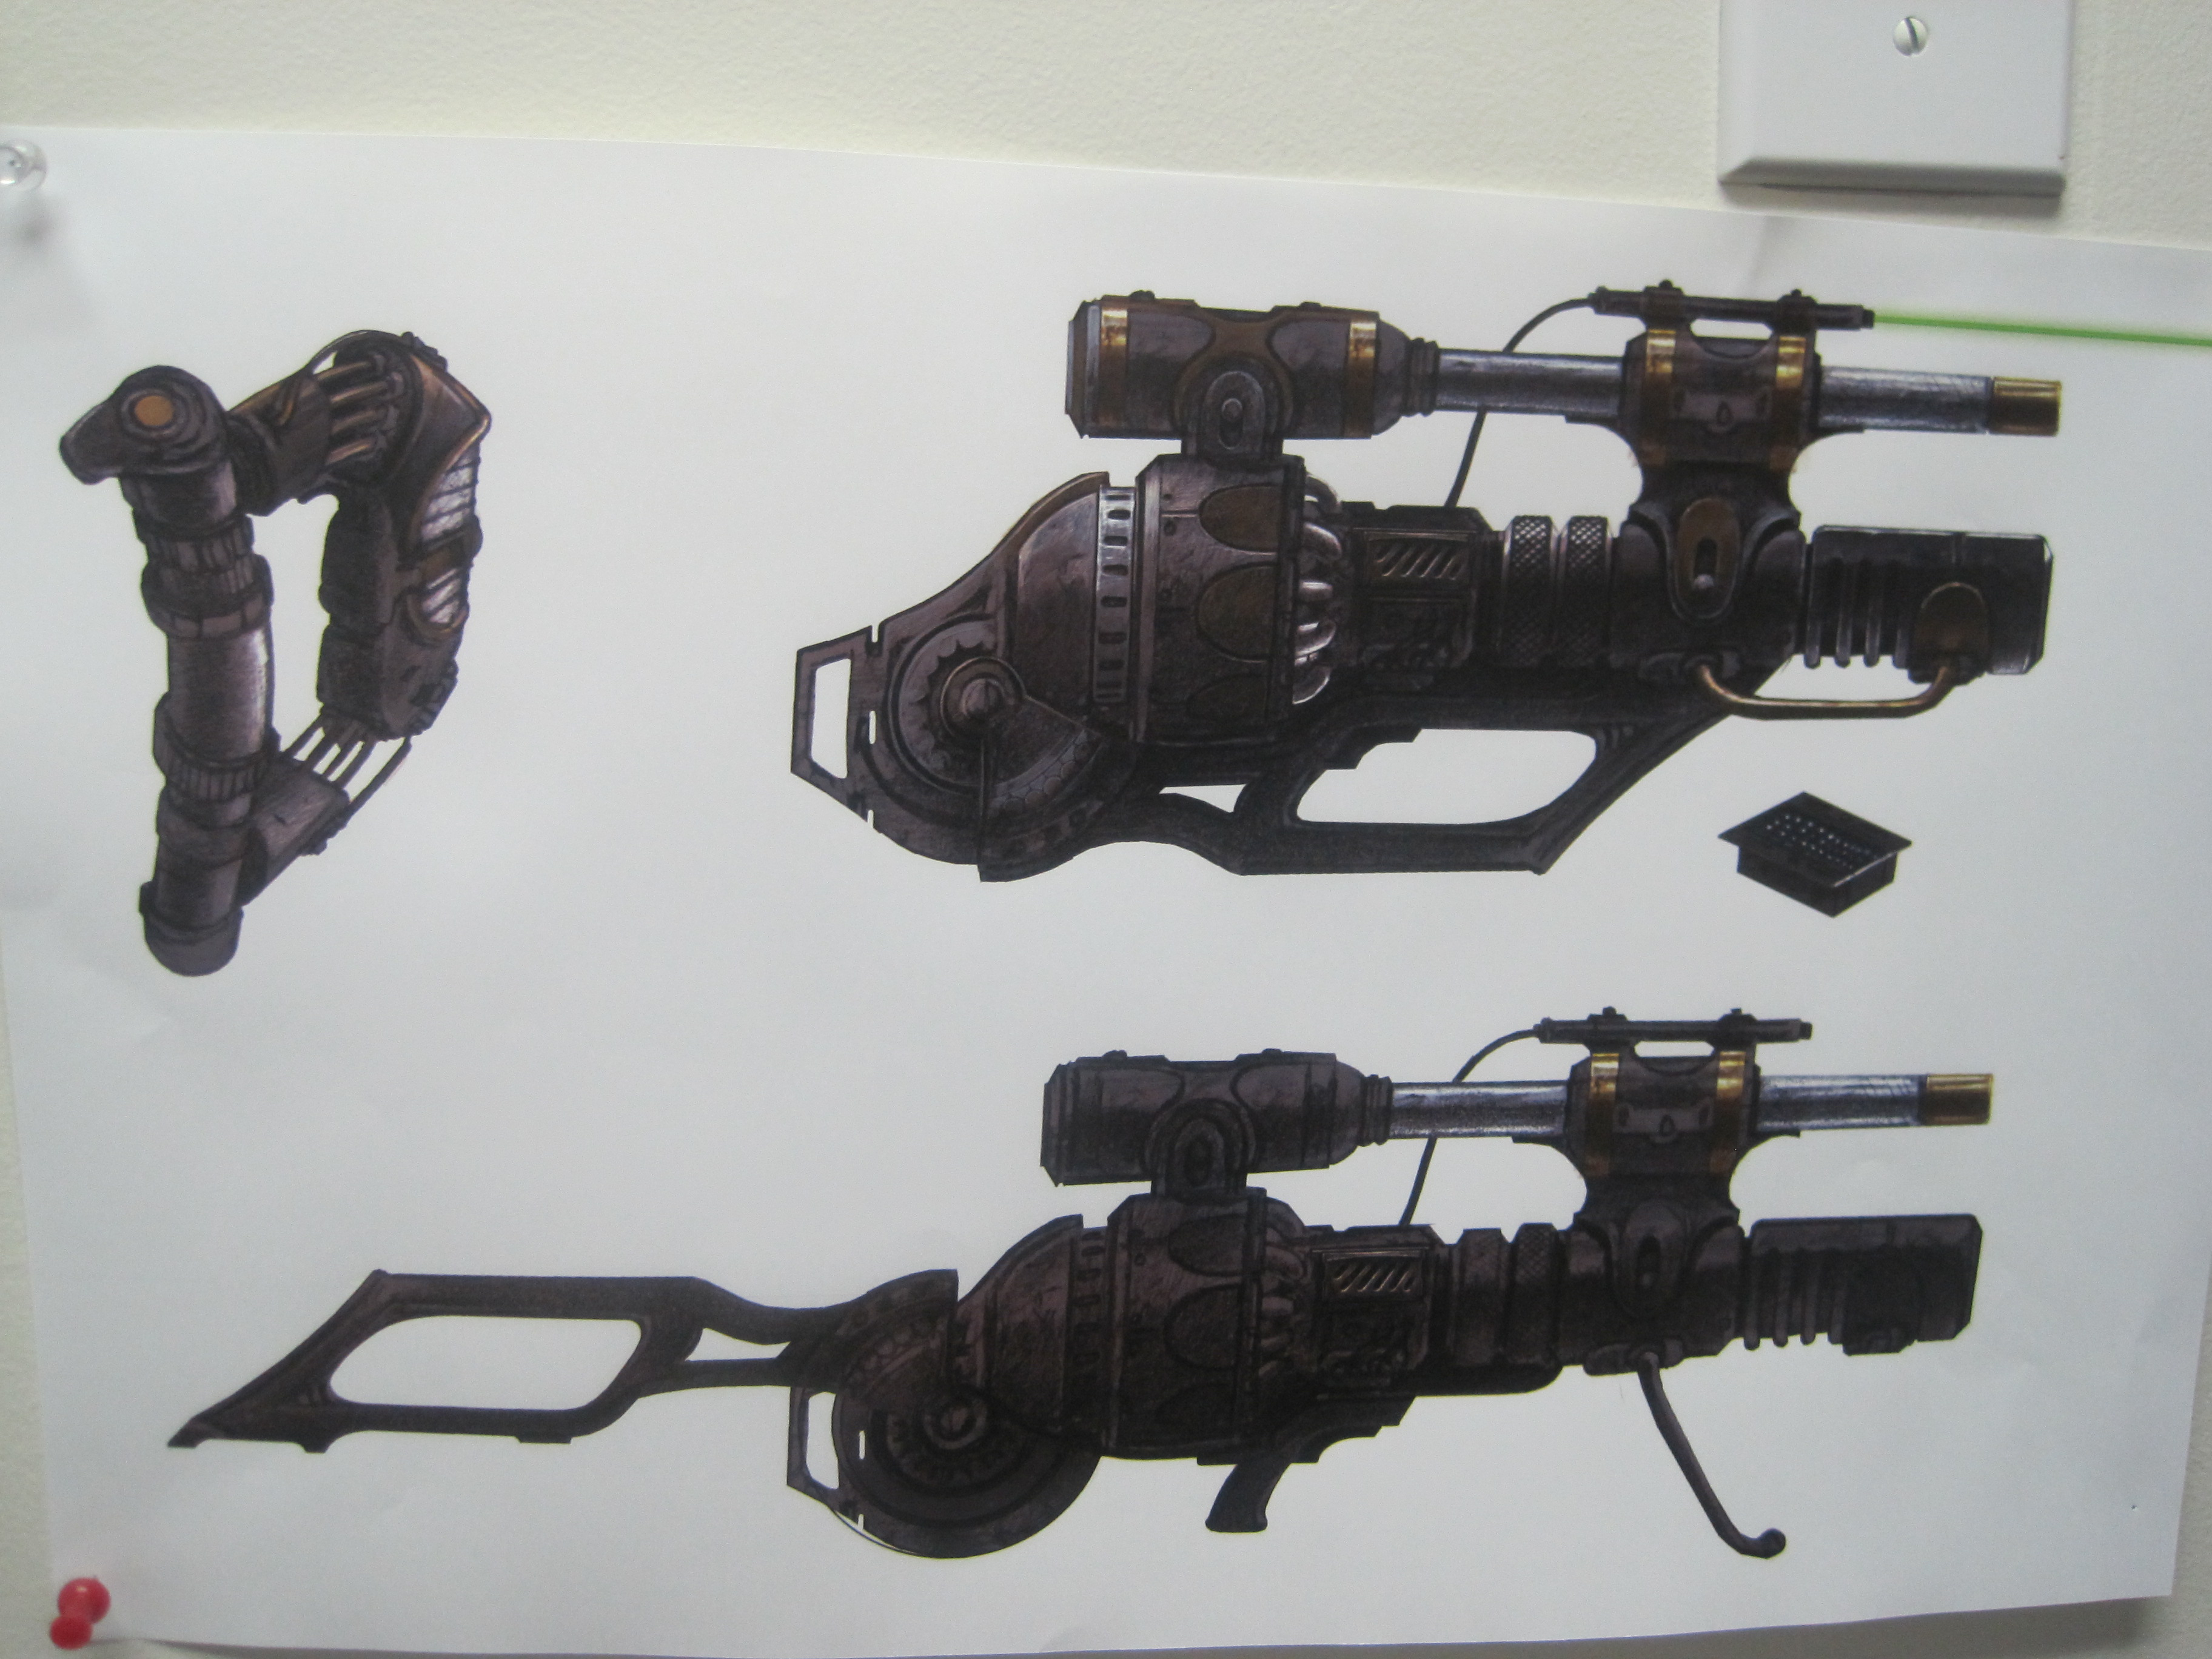 Ancient hand weapons finally?